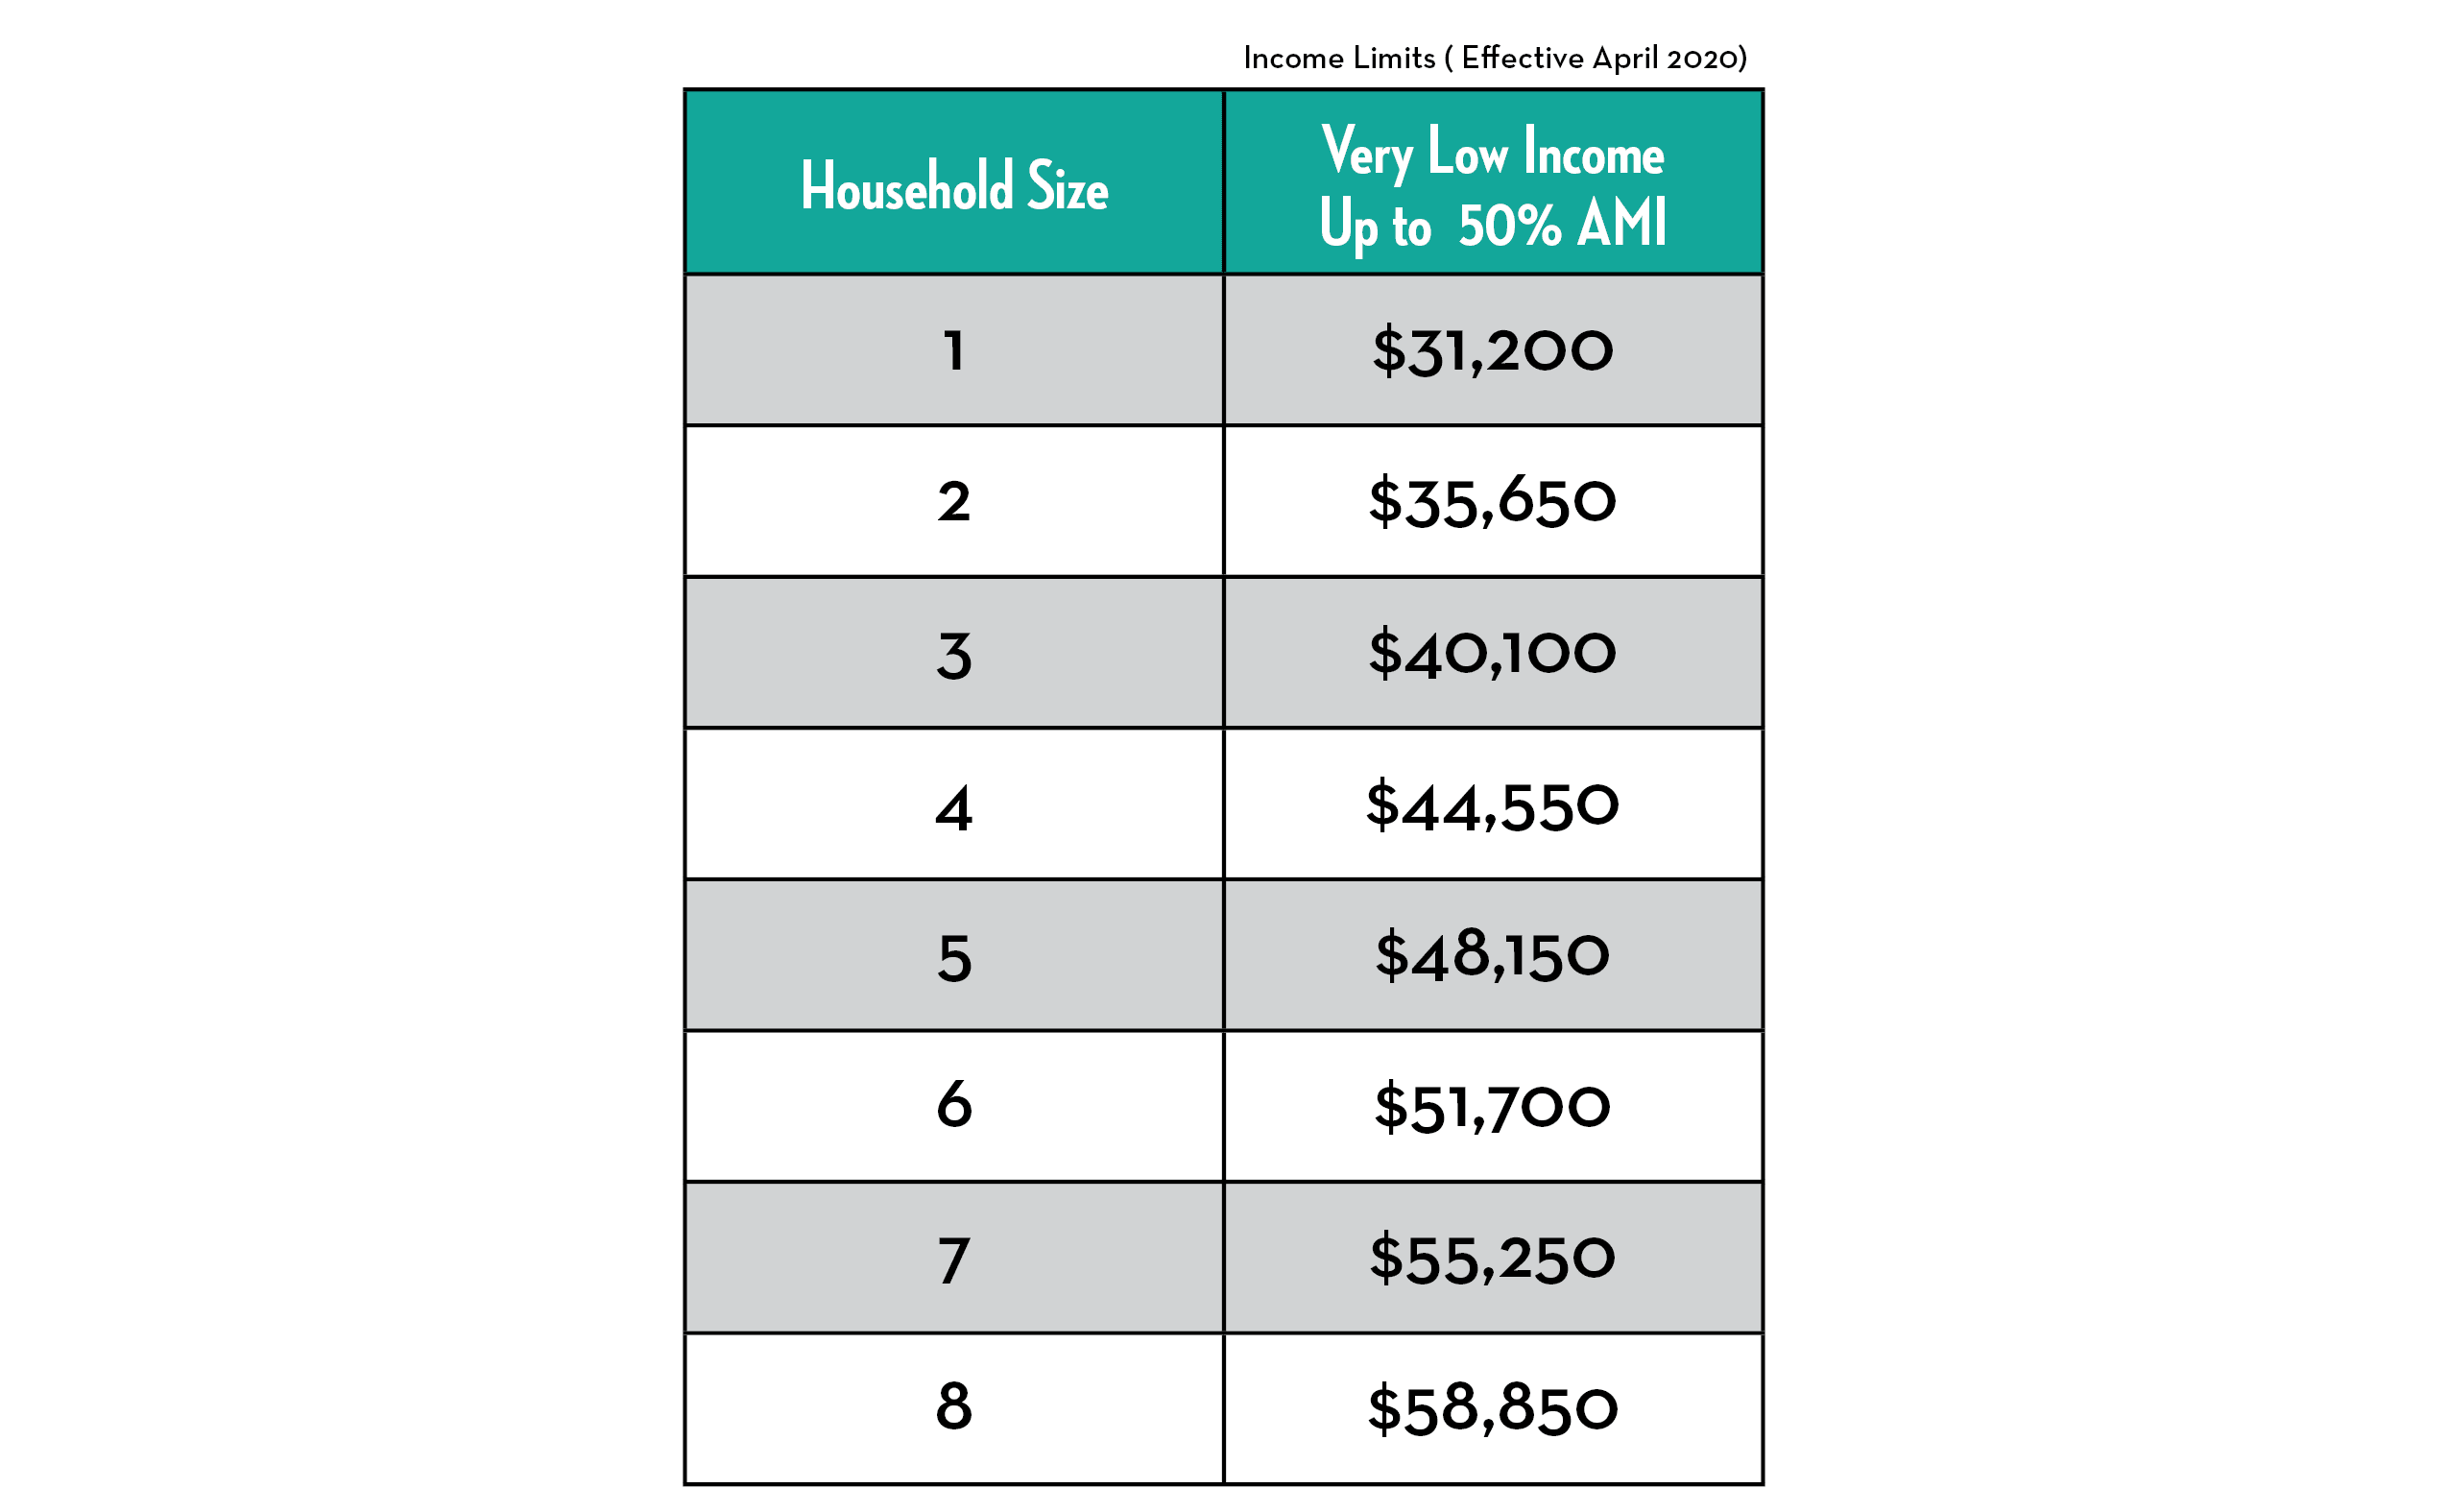 Neighborhood Stabilization Program (NSP)income chart